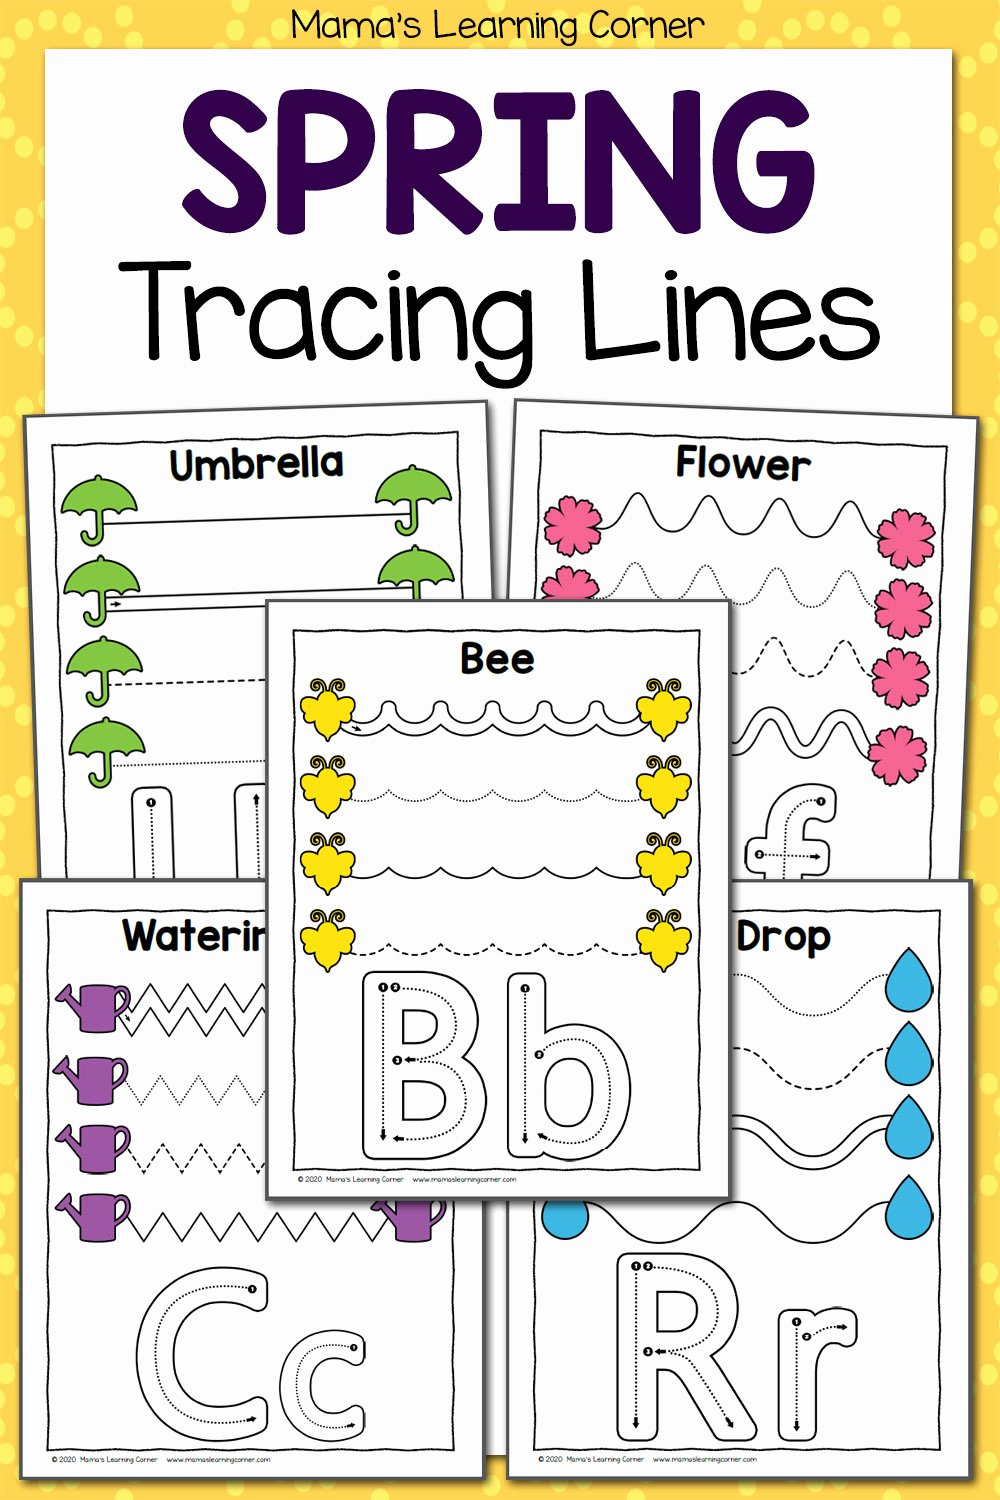 Spring Tracing Worksheets for Preschoolers Fresh Spring Tracing Worksheets for Preschool Mamas Learning Corner